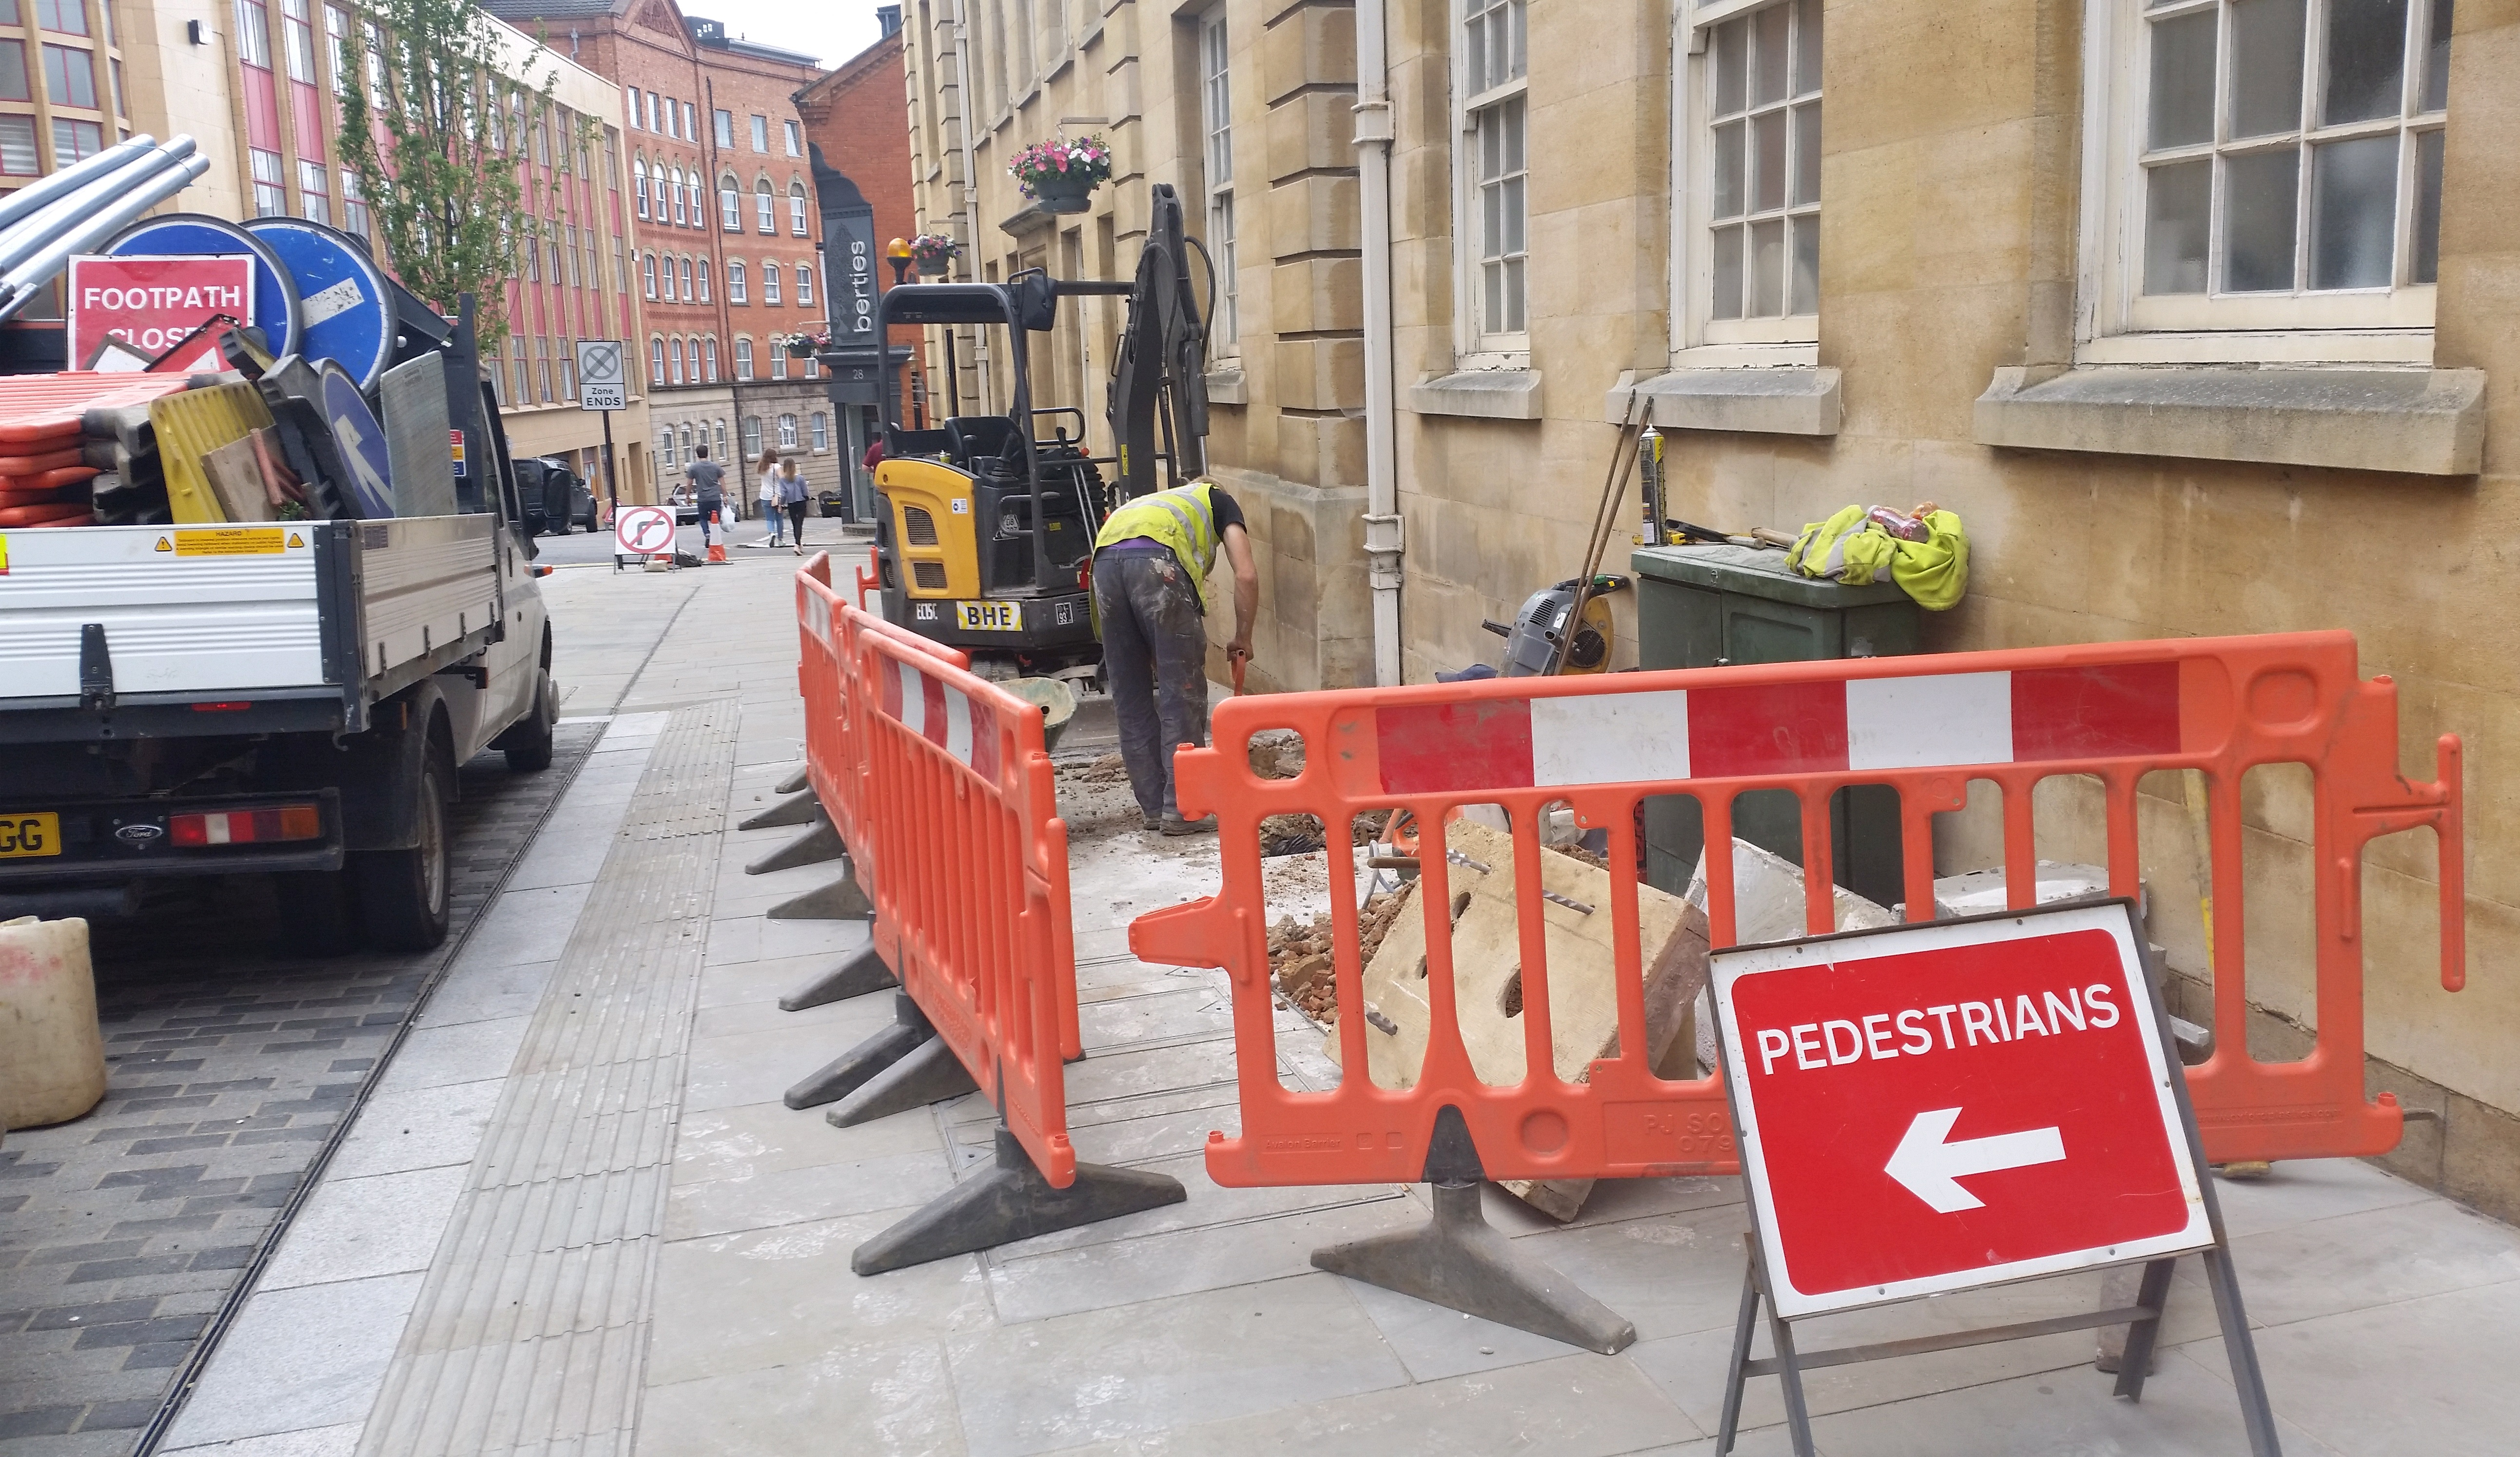 Image illustrating safety barriers in place whilst network deployment takes place.